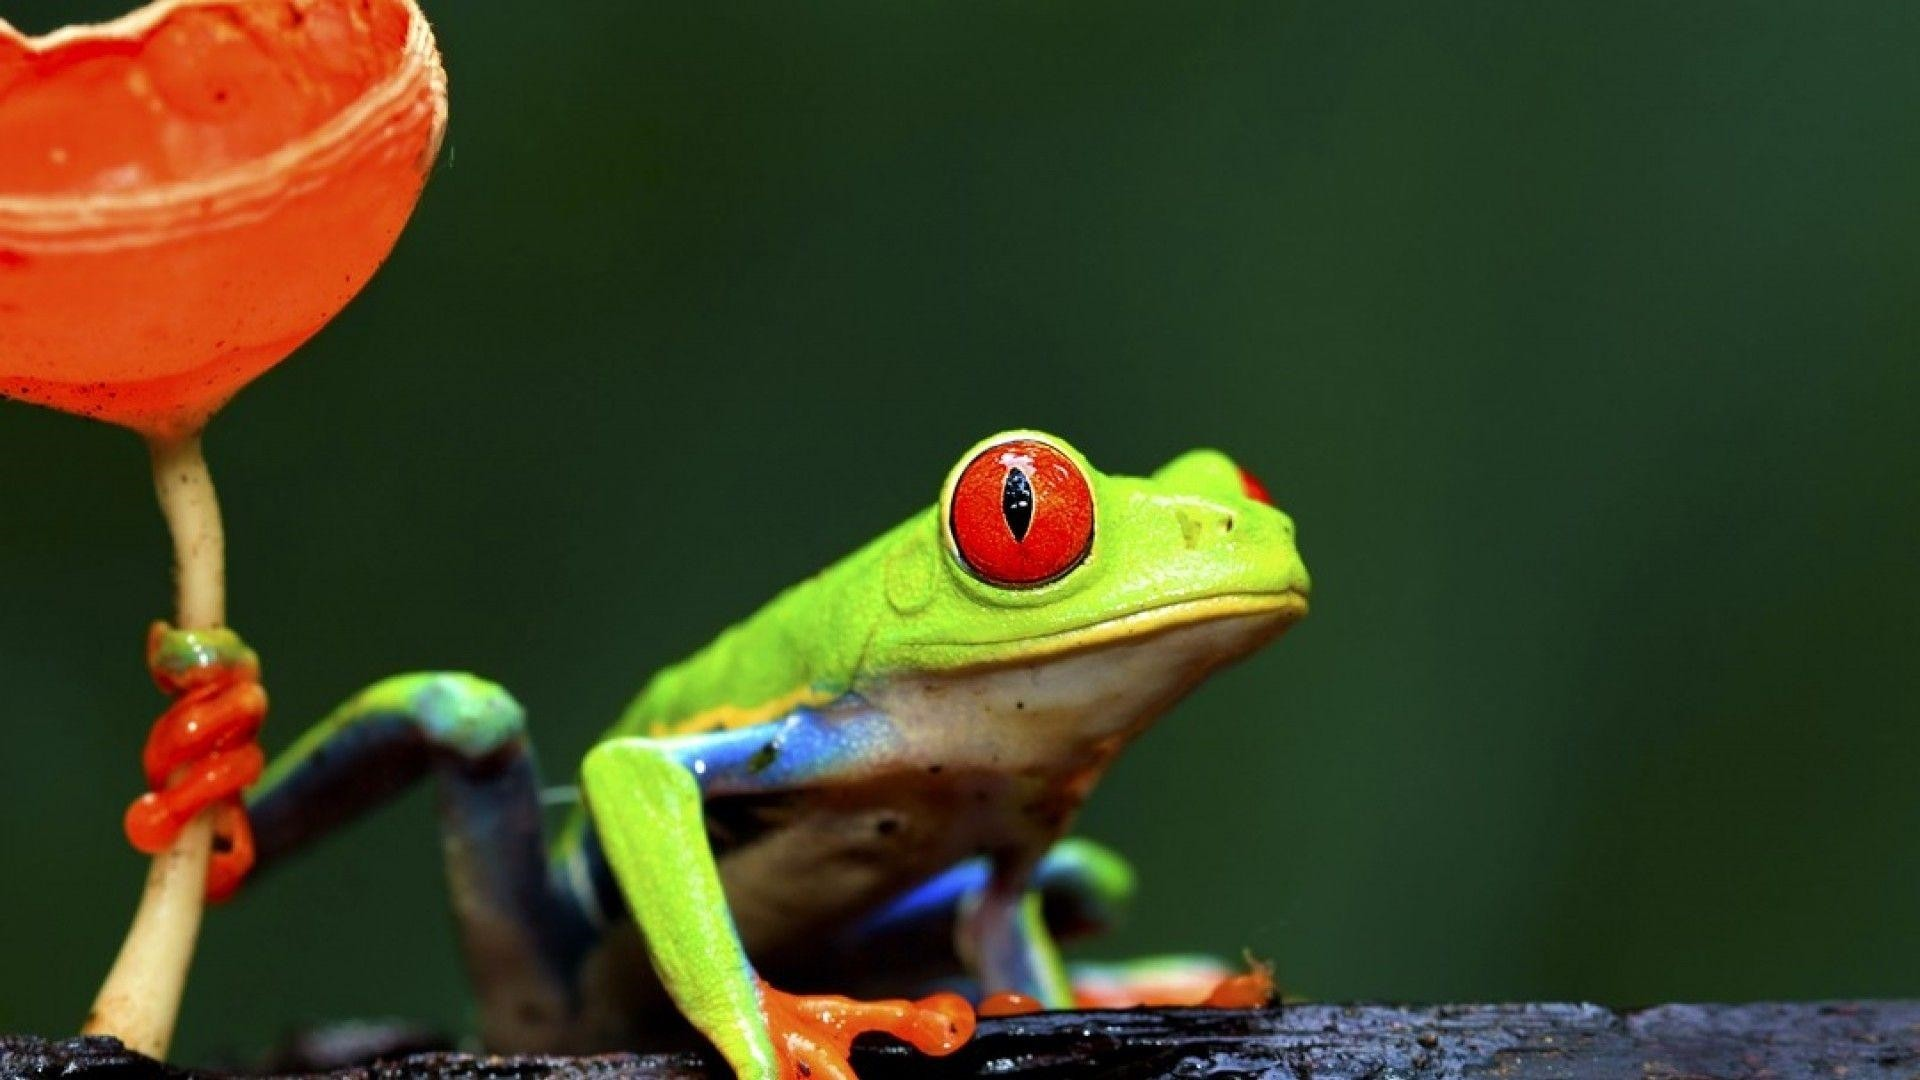 Frog Wallpaper and Background